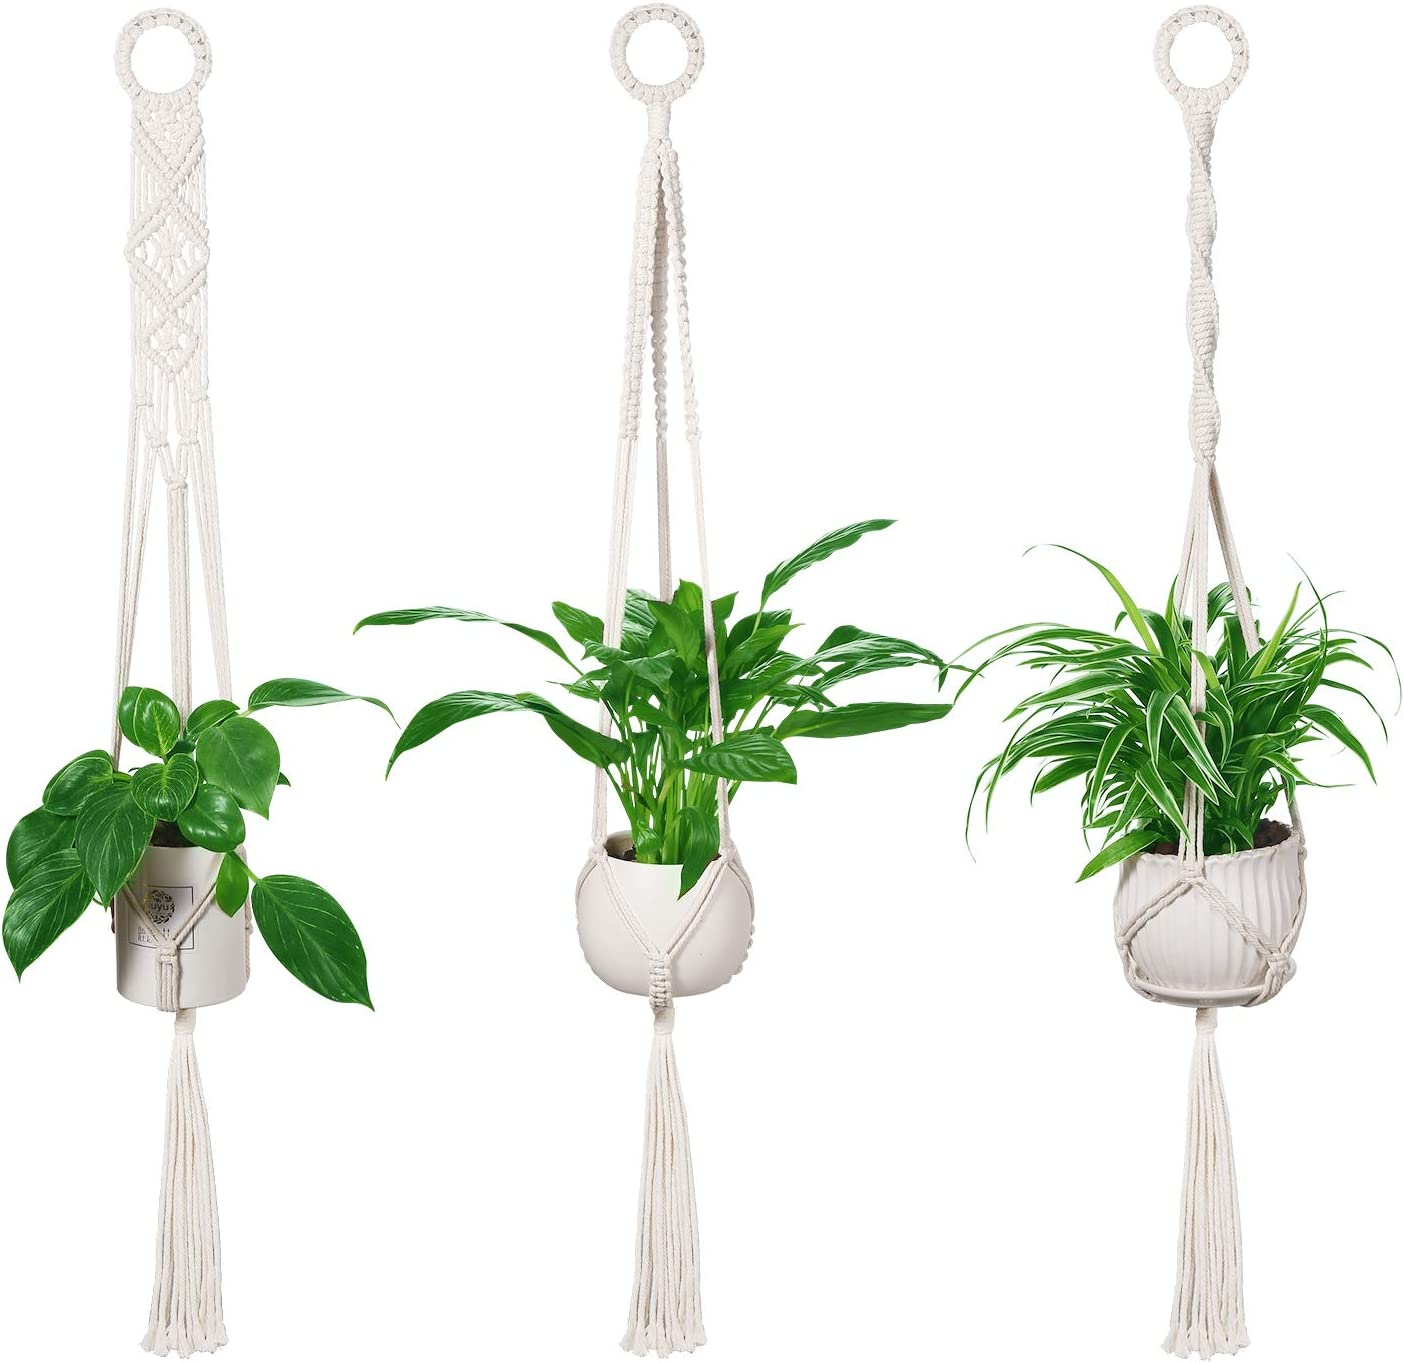 LEEPES 3 Pack Macrame Plant Indoor Wall Mesa Mall Selling Hanging Planters Hangers